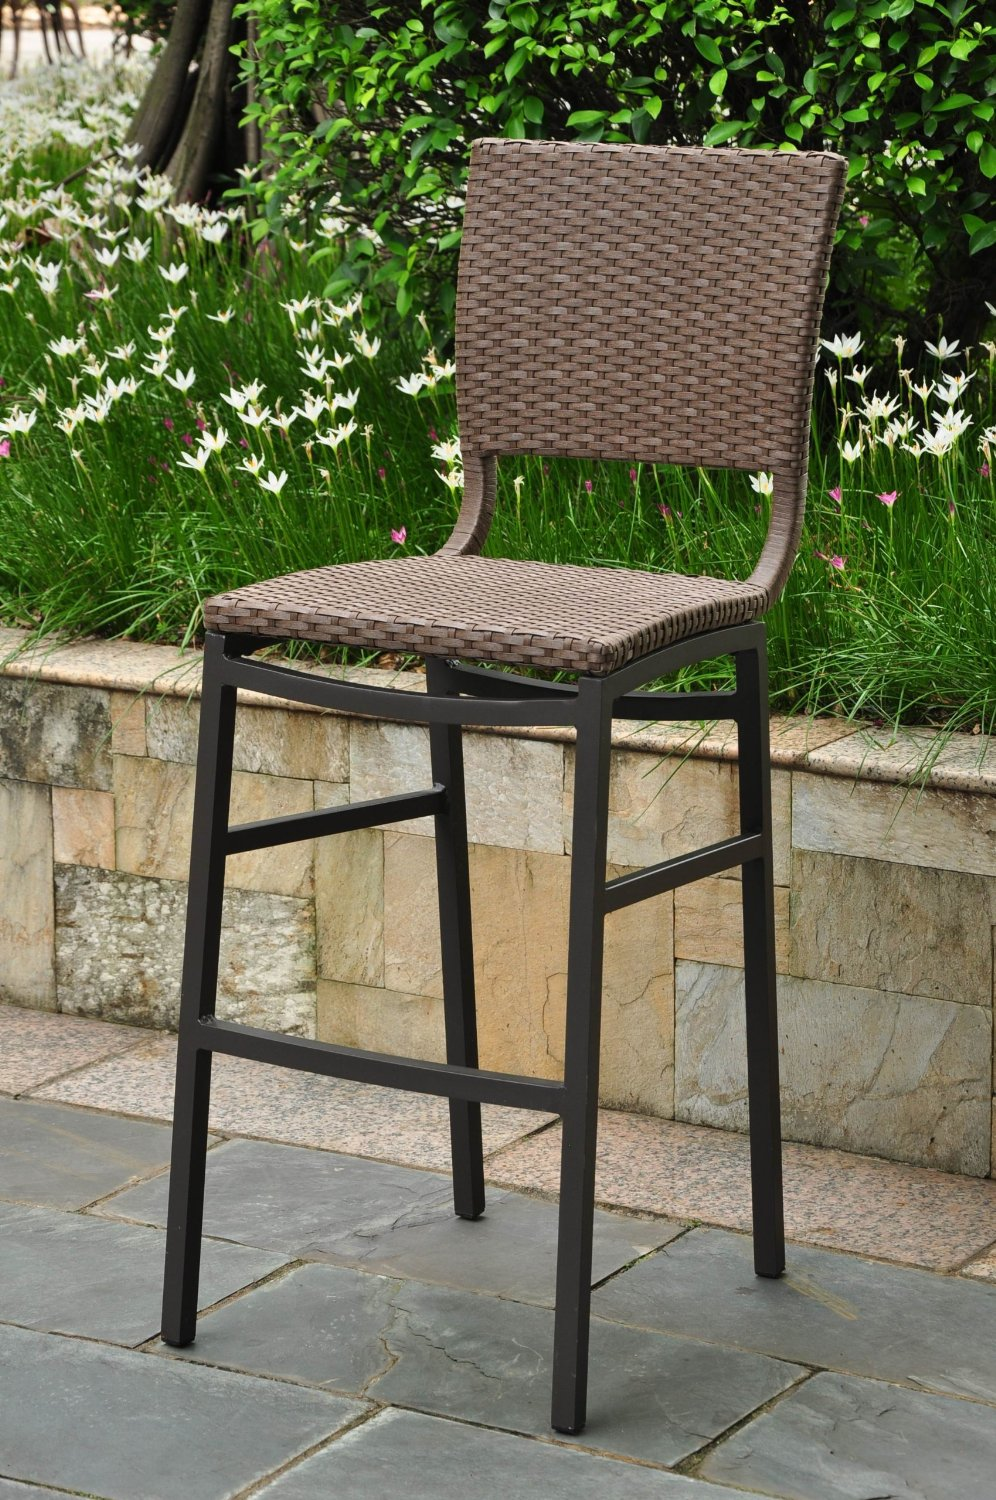 Image of: Outdoor Barstools Wicker